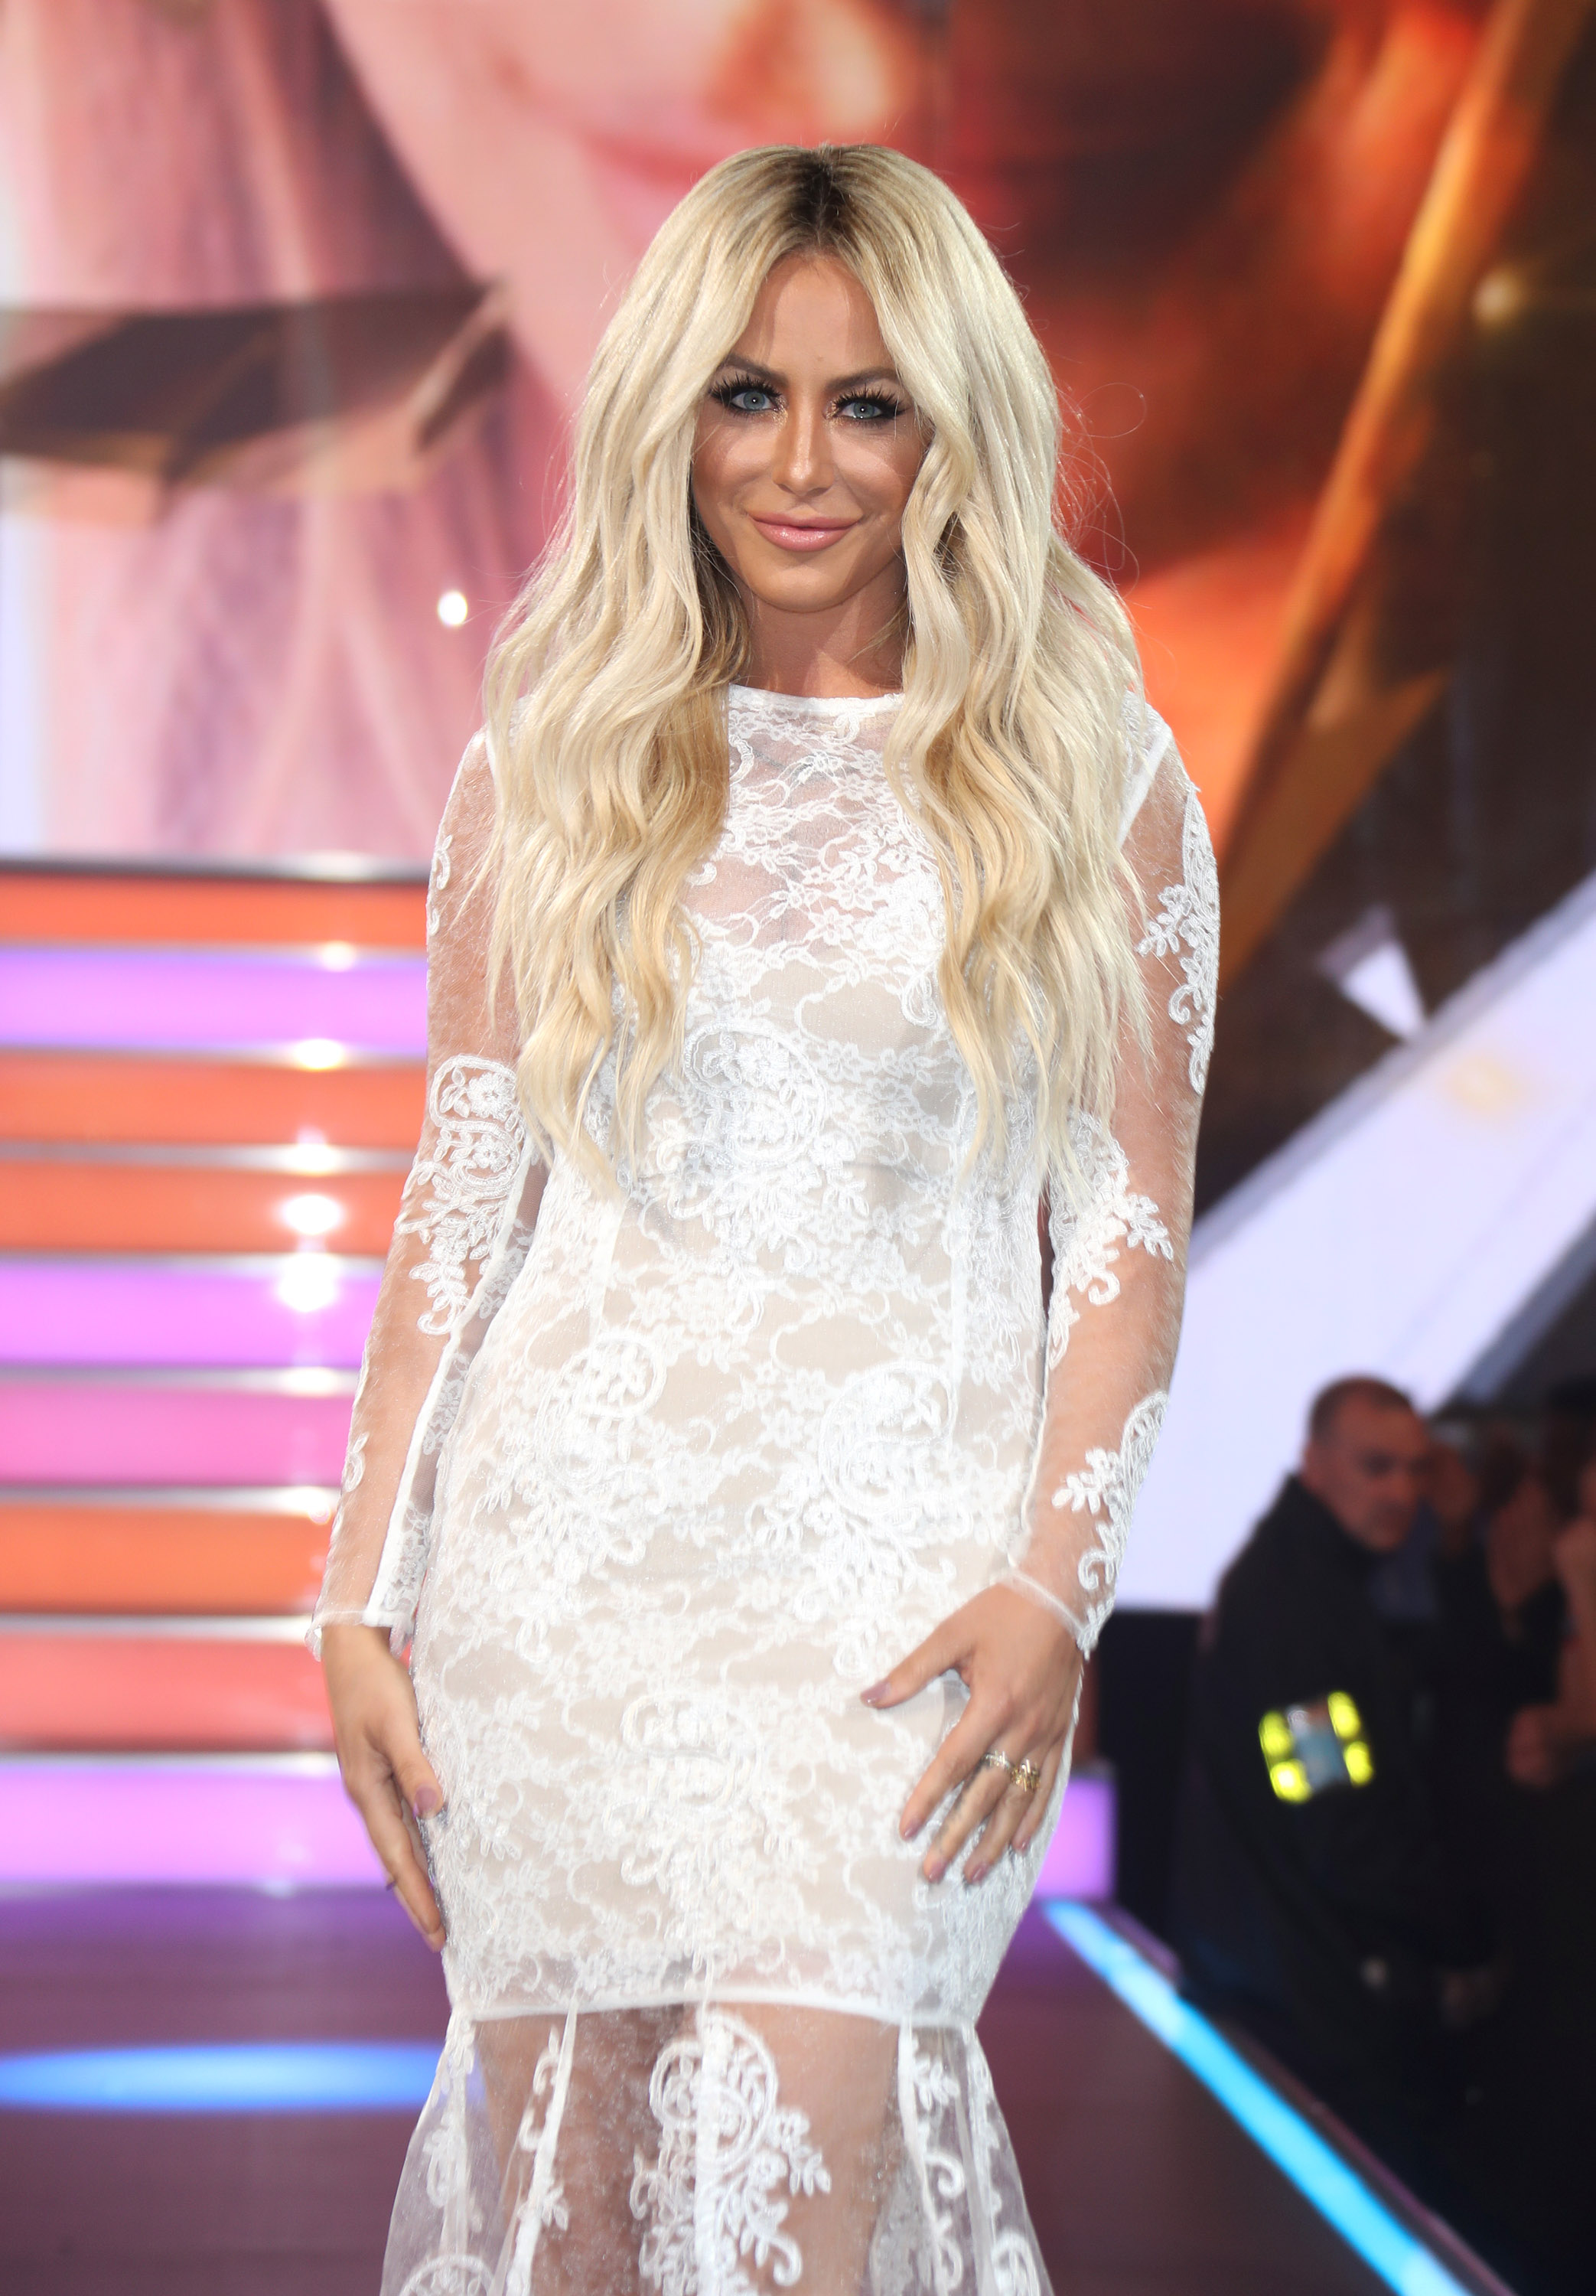 Aubrey O'Day Celebrity Big Brother 2016